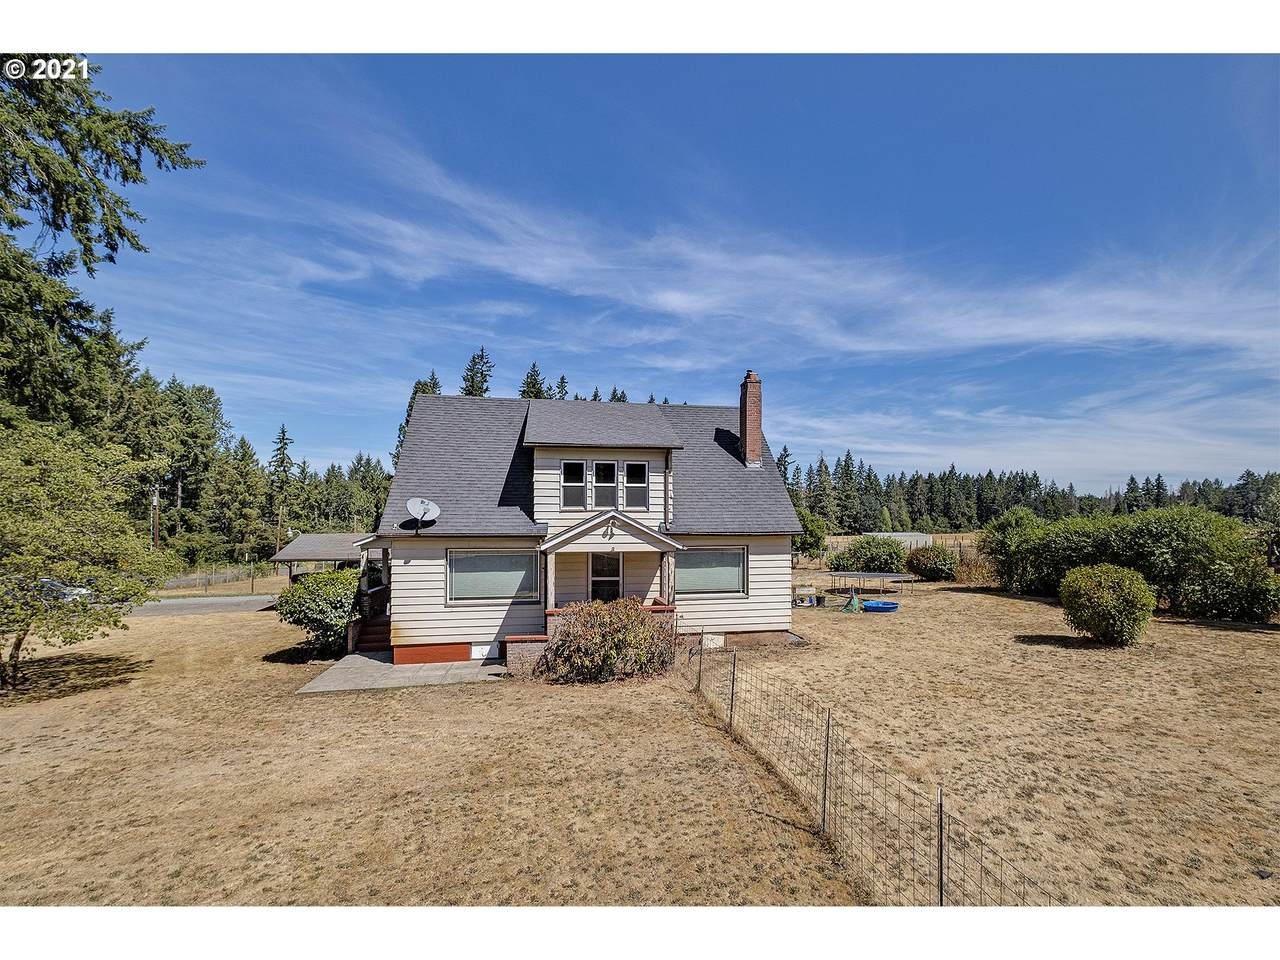 30130 Dhooghe Rd - Photo 1